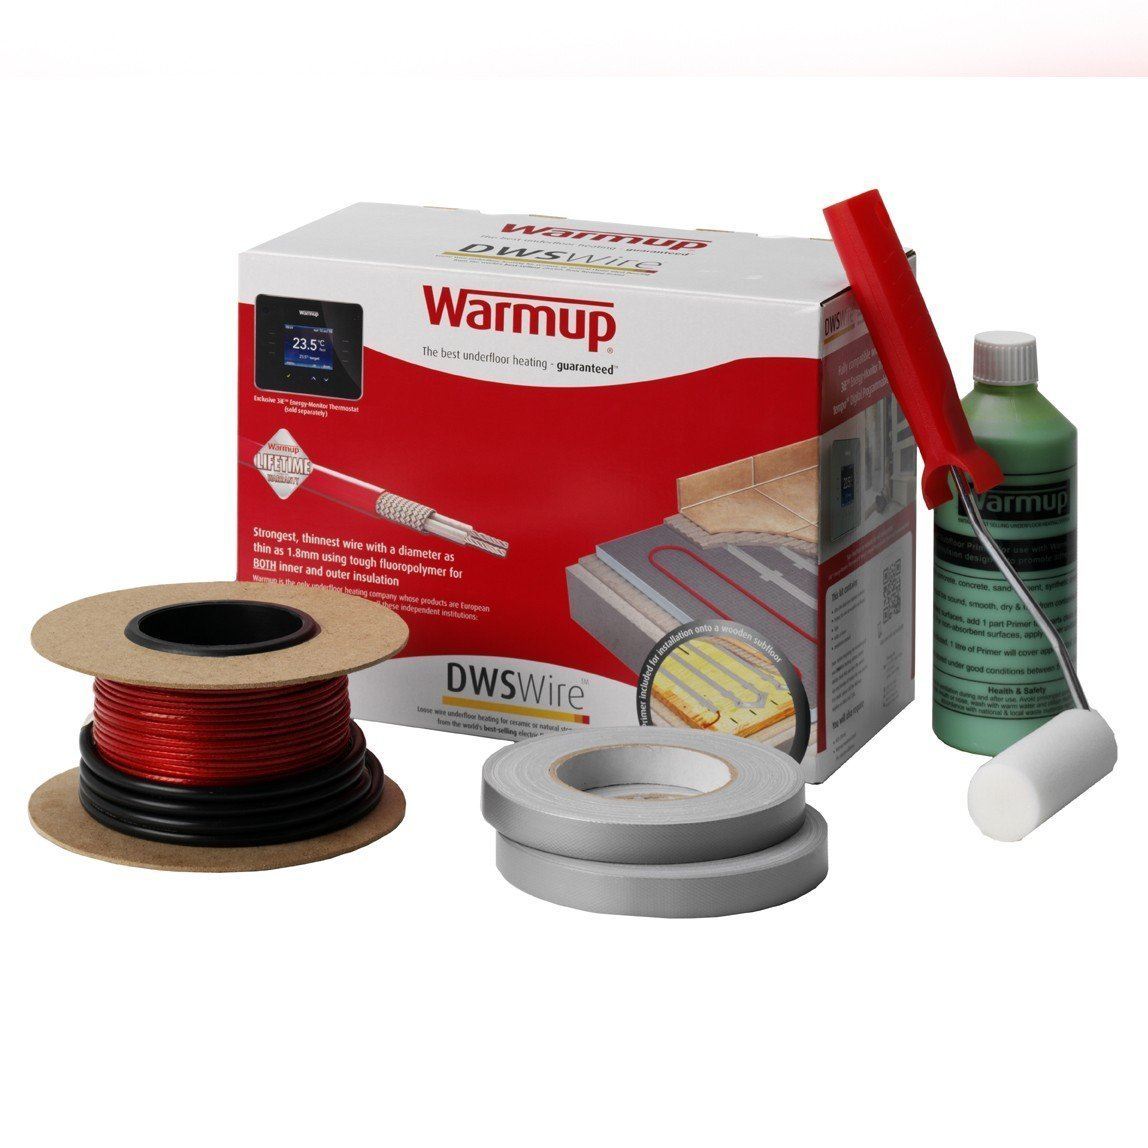 Warmup Underfloor Heating System DWS300 1.5-2.4 Sq/Mtr 300w Cable thickness: 2mm Lifetime Warranty DWS300